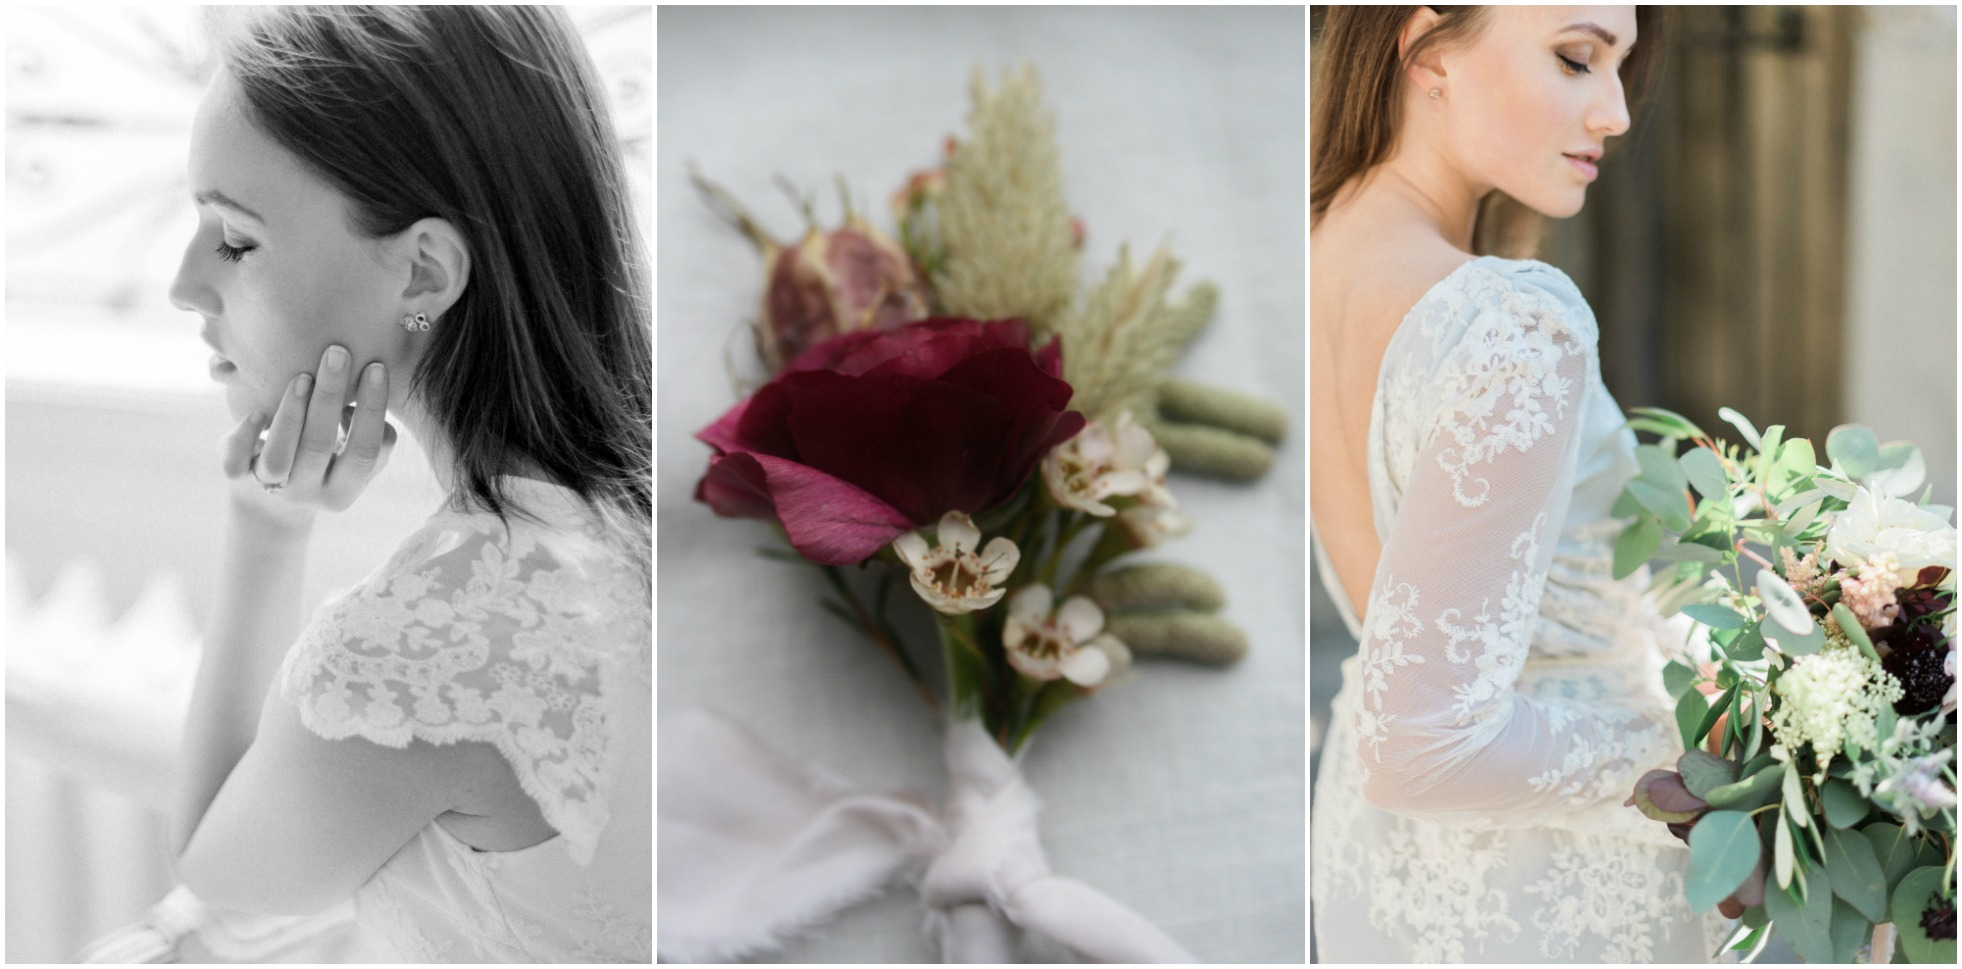 Photography by Victoria Lamburn and Gather & Bloom